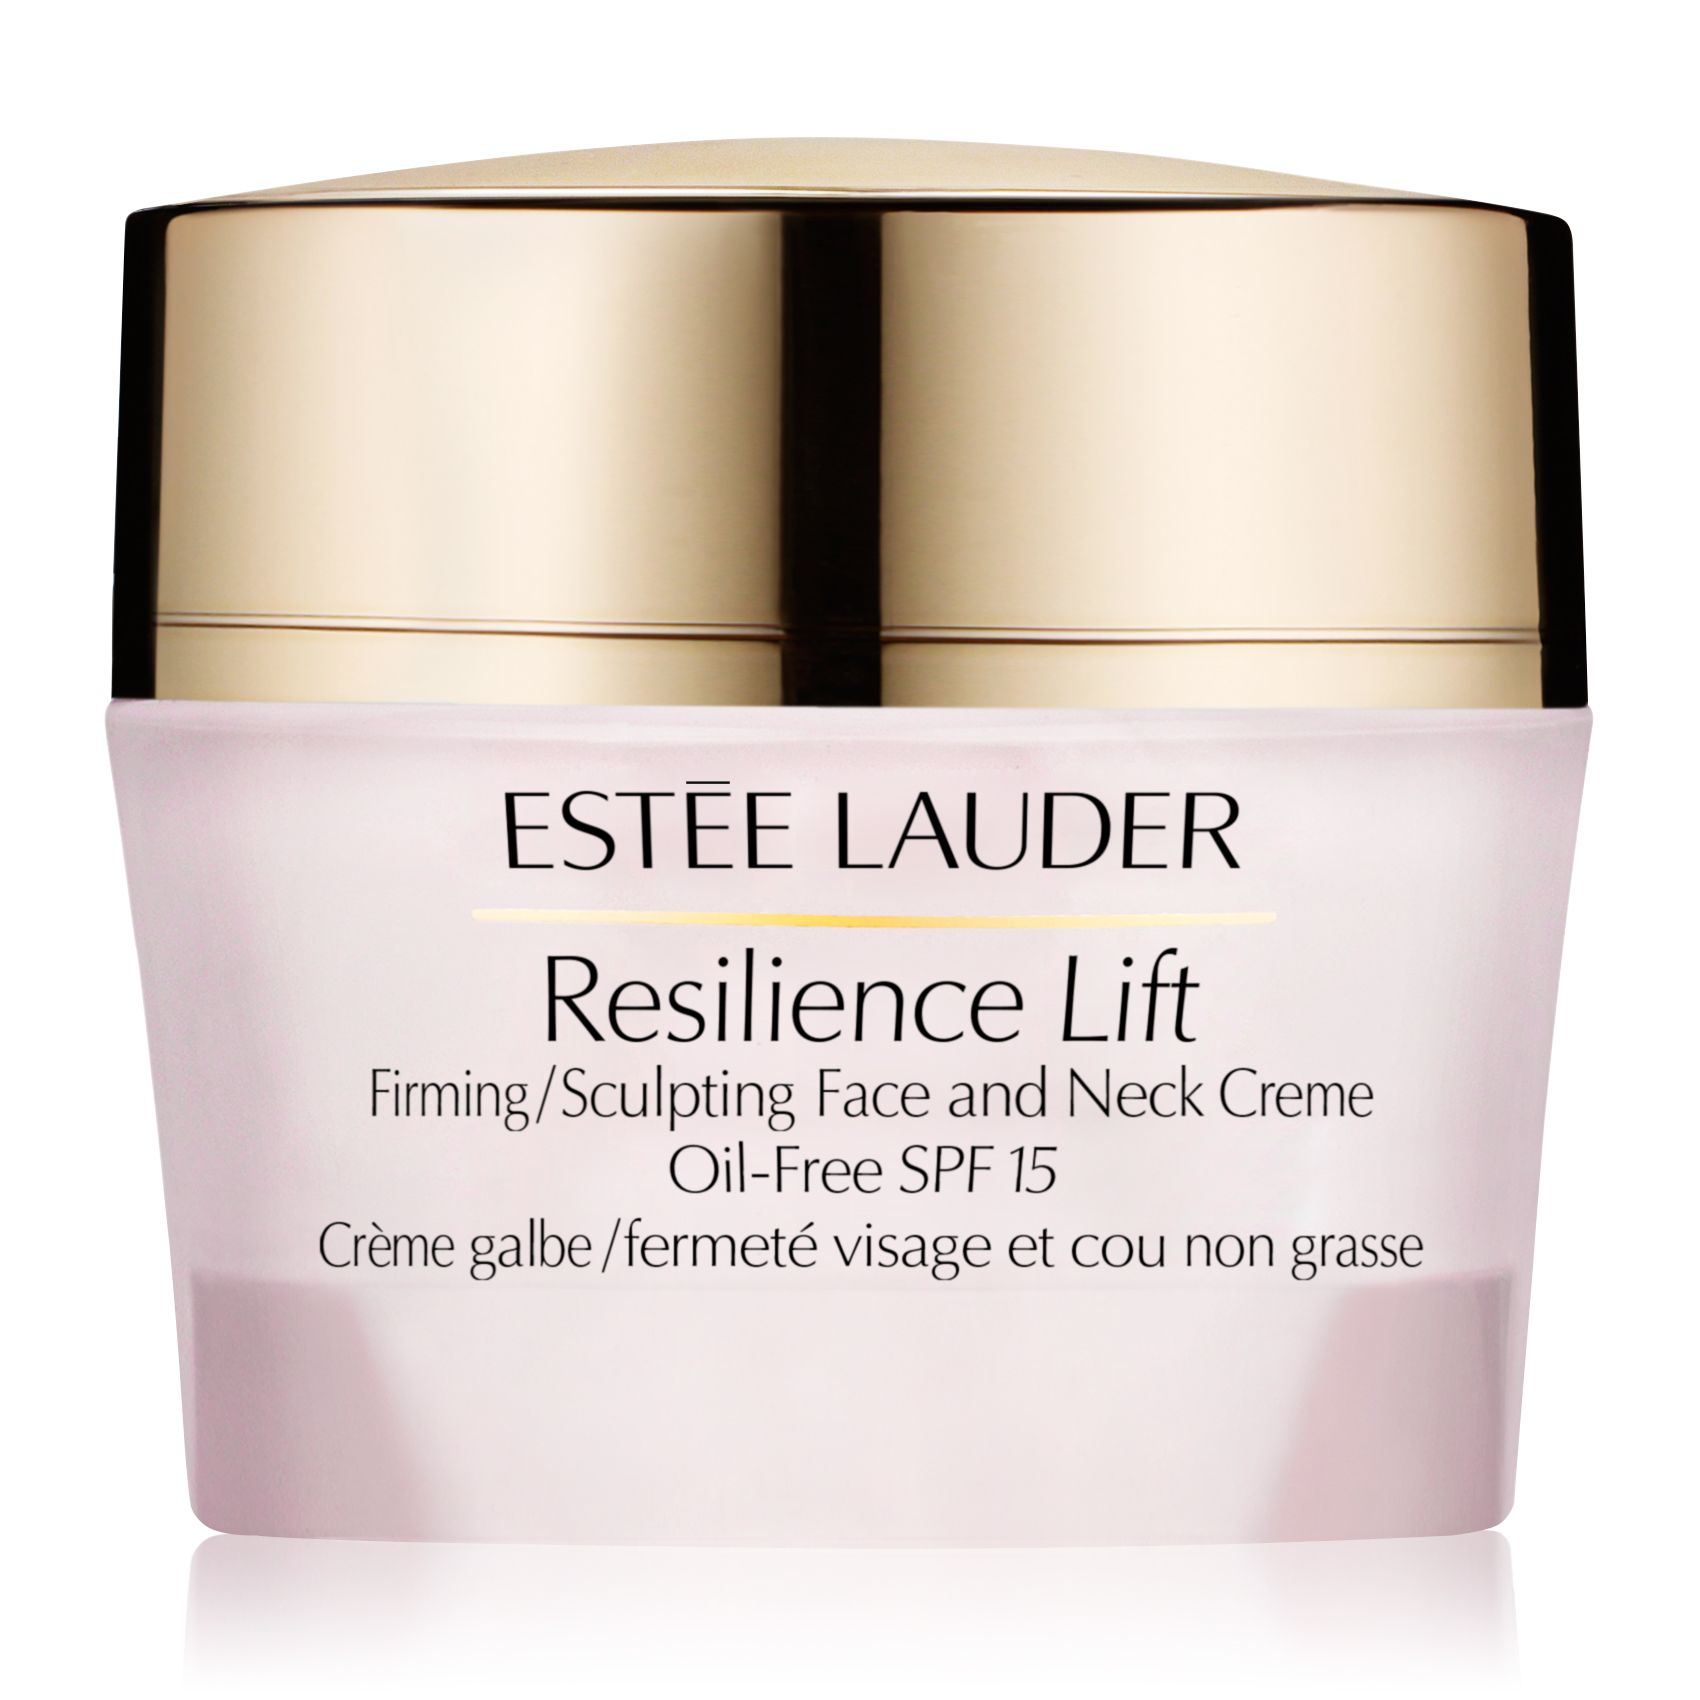 Resilience Lift Firming/Sculpting Creme Oil-Free